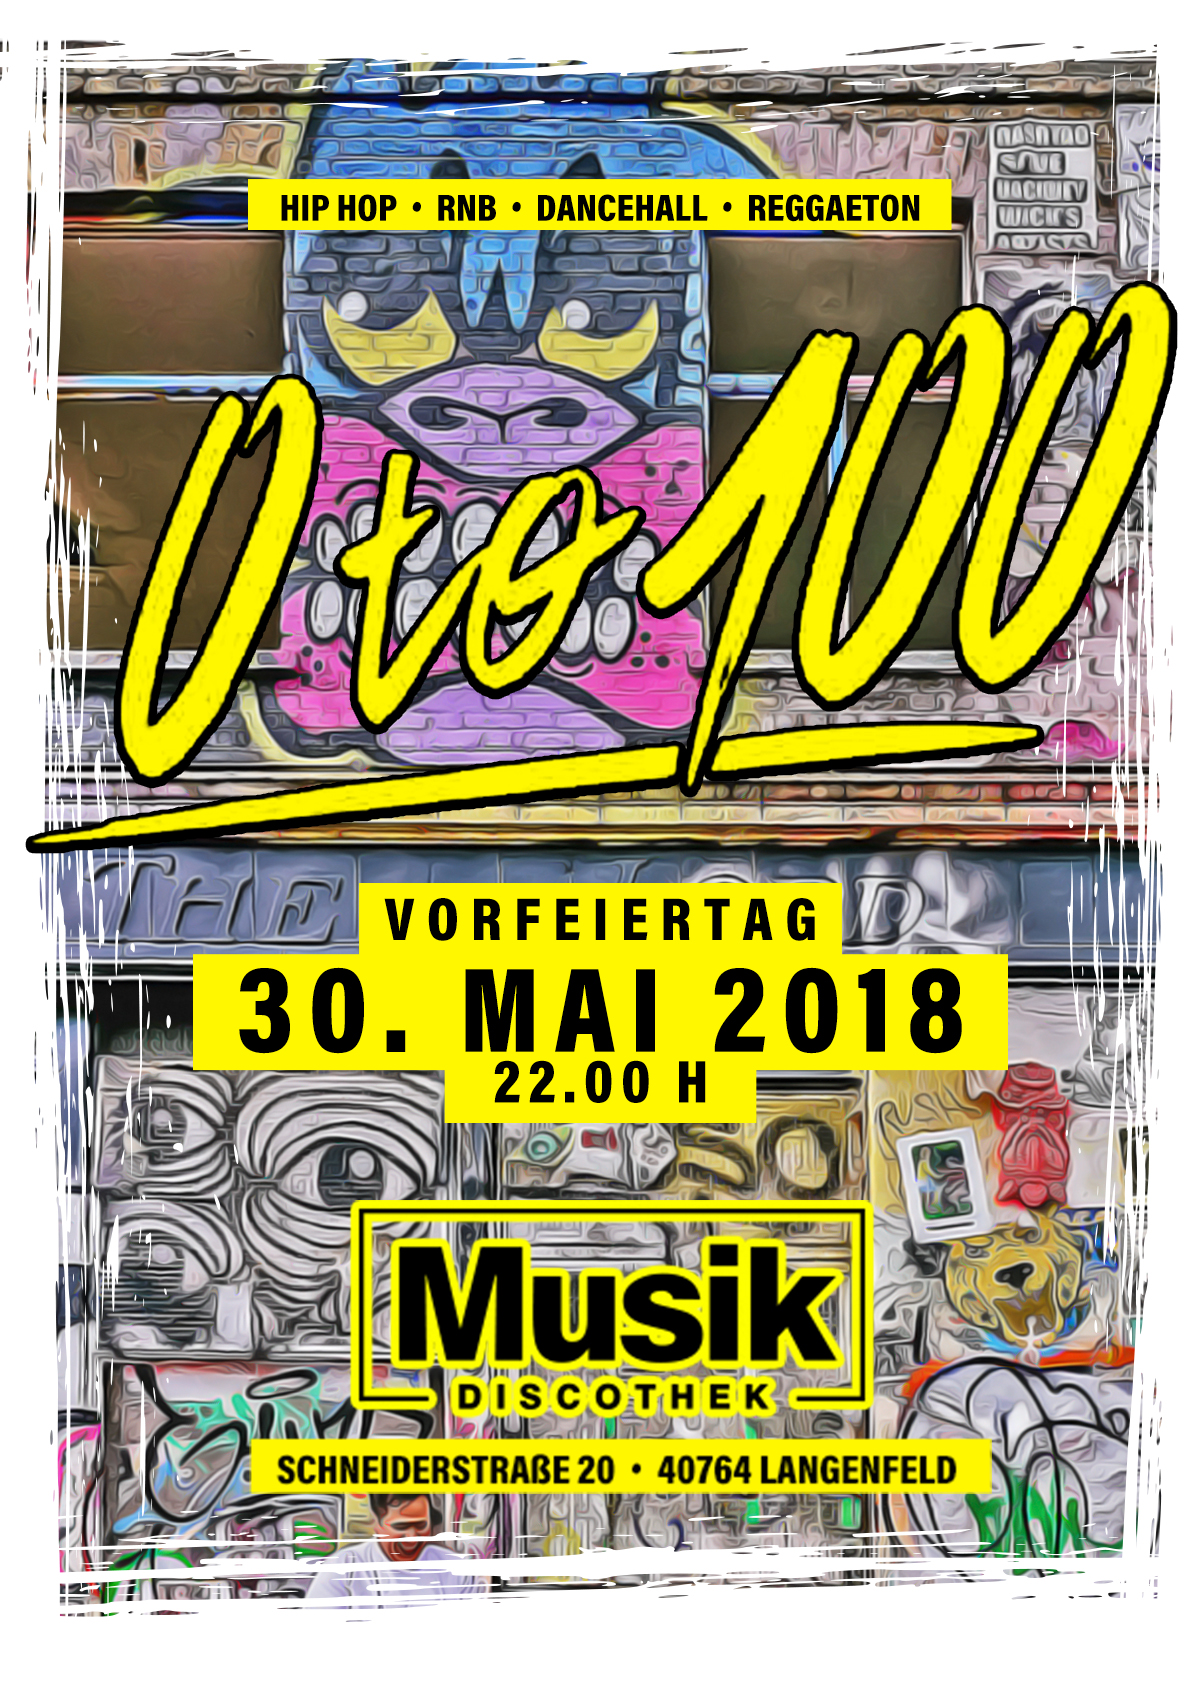 0 to 100 30.05. x Musik